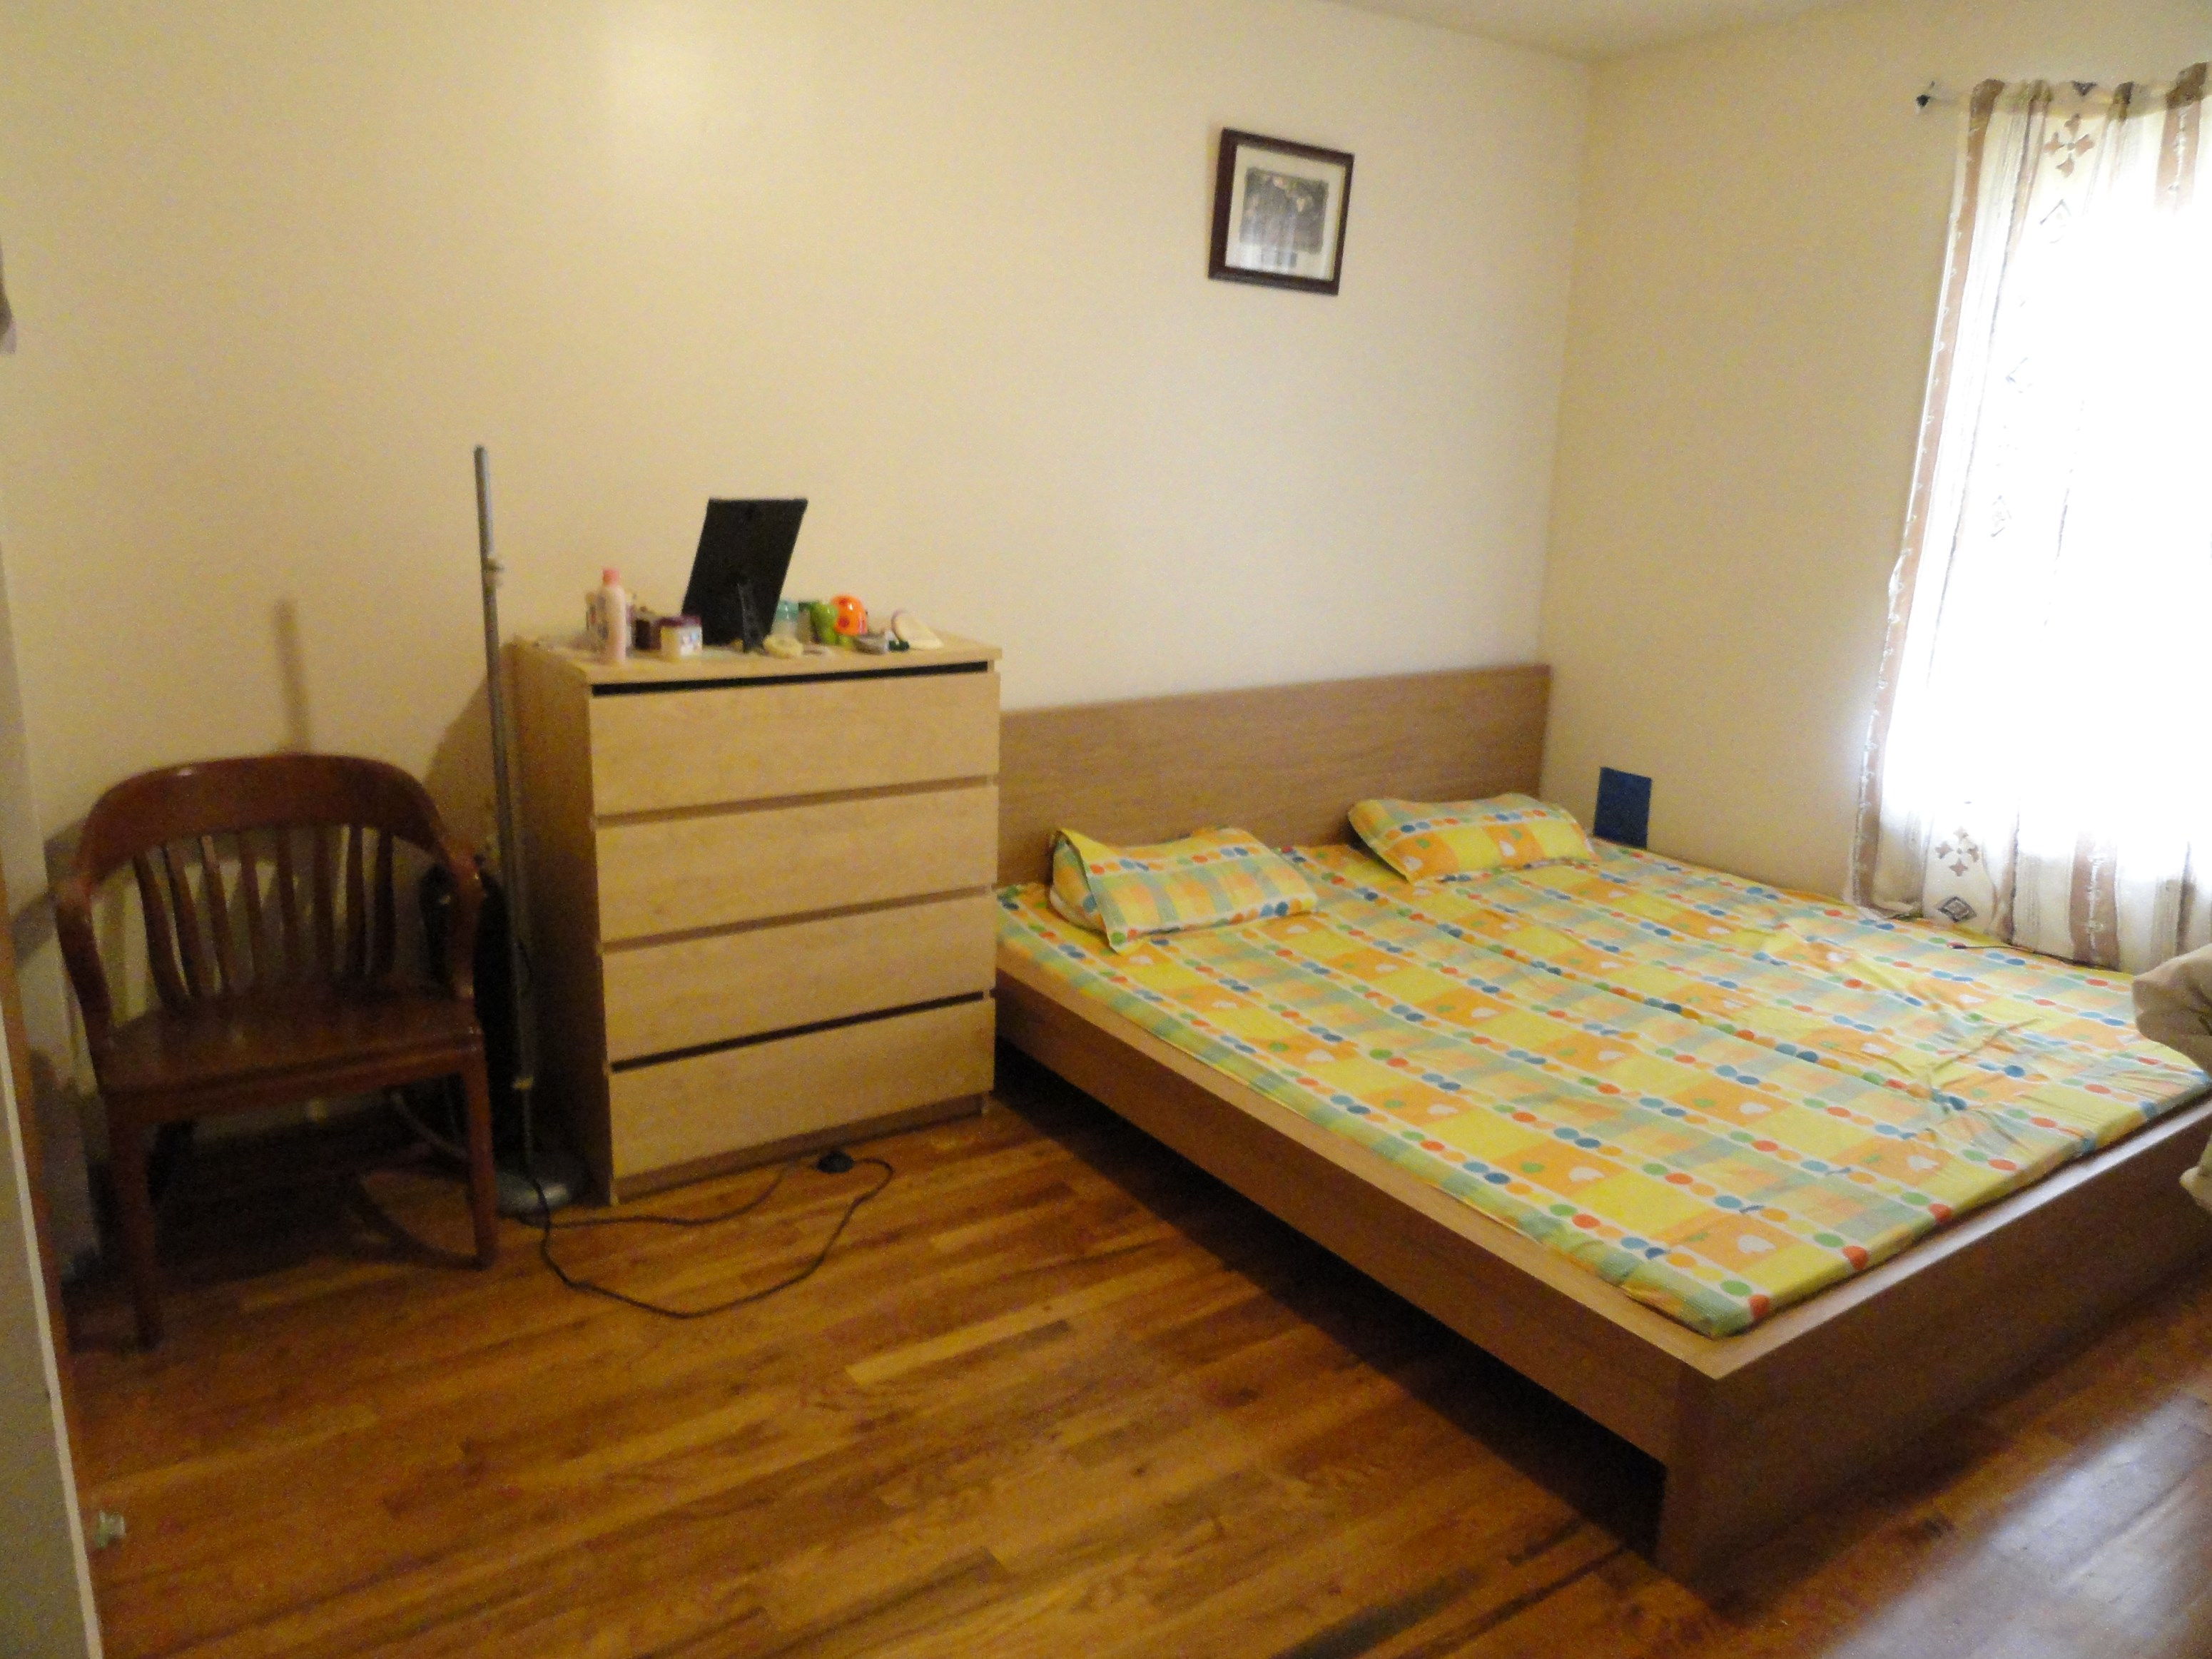 4 Weeks Accommodation In Large Private Bedroom Room With Attached Bathroom In Jsq